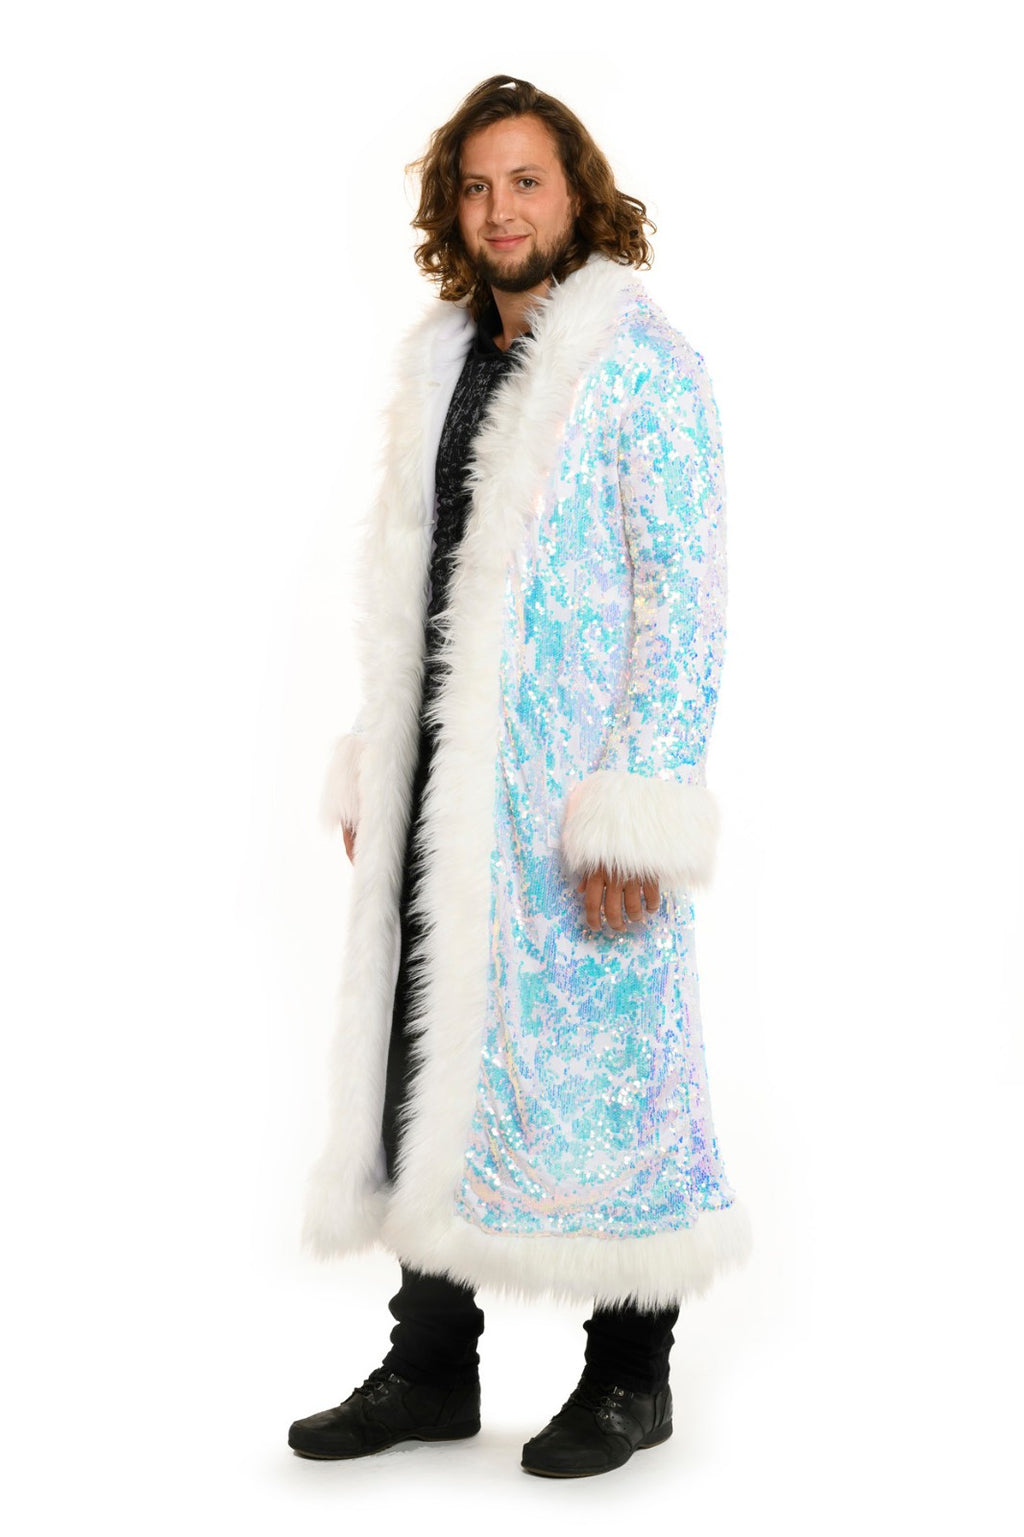 Deluxe Baron Coat: Fearless Unicorn Seqiun + White Faux Fur Trim